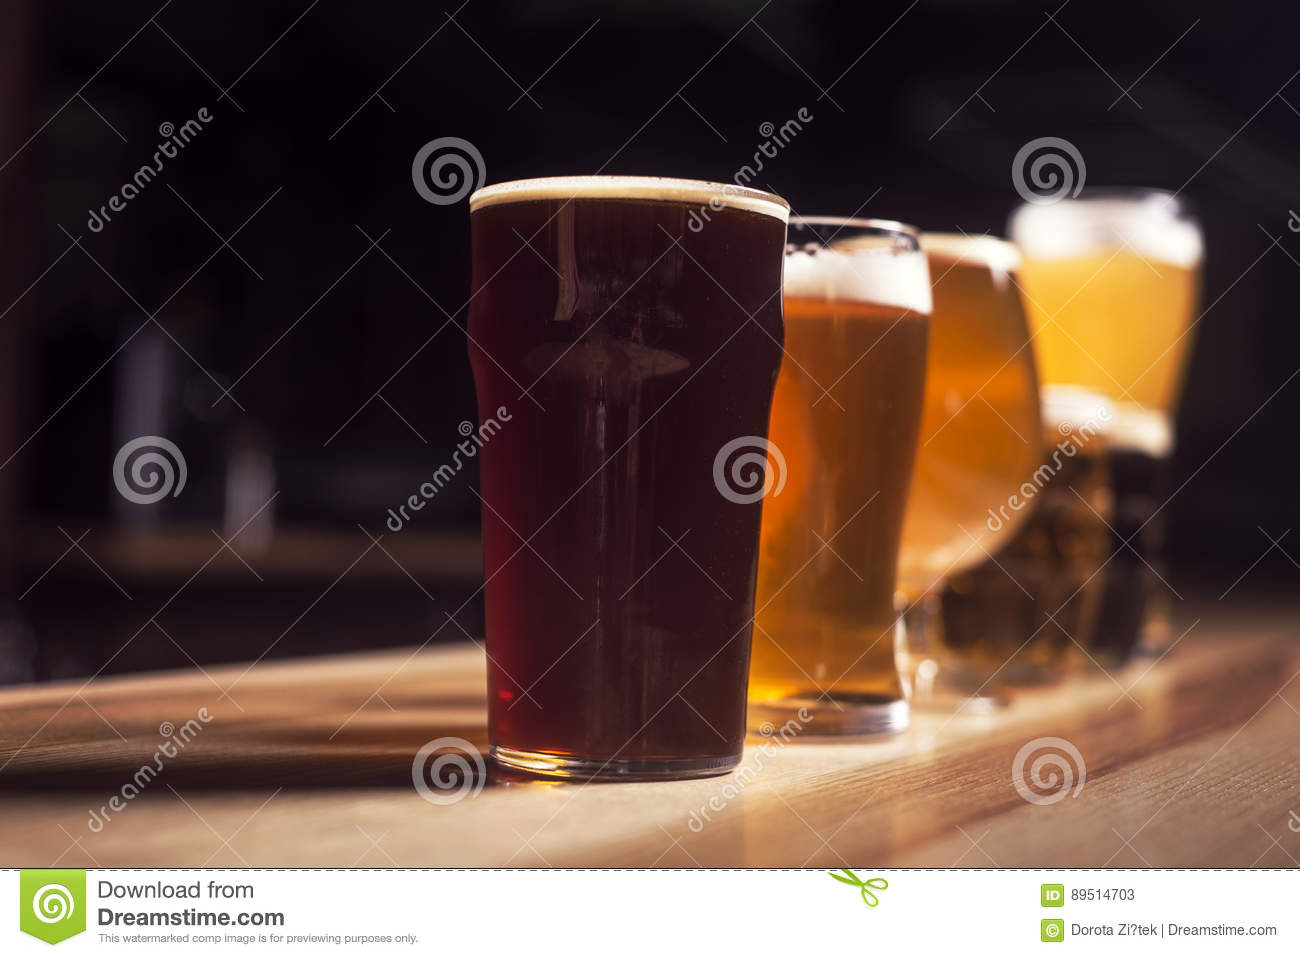 Several different beers are standing in a row